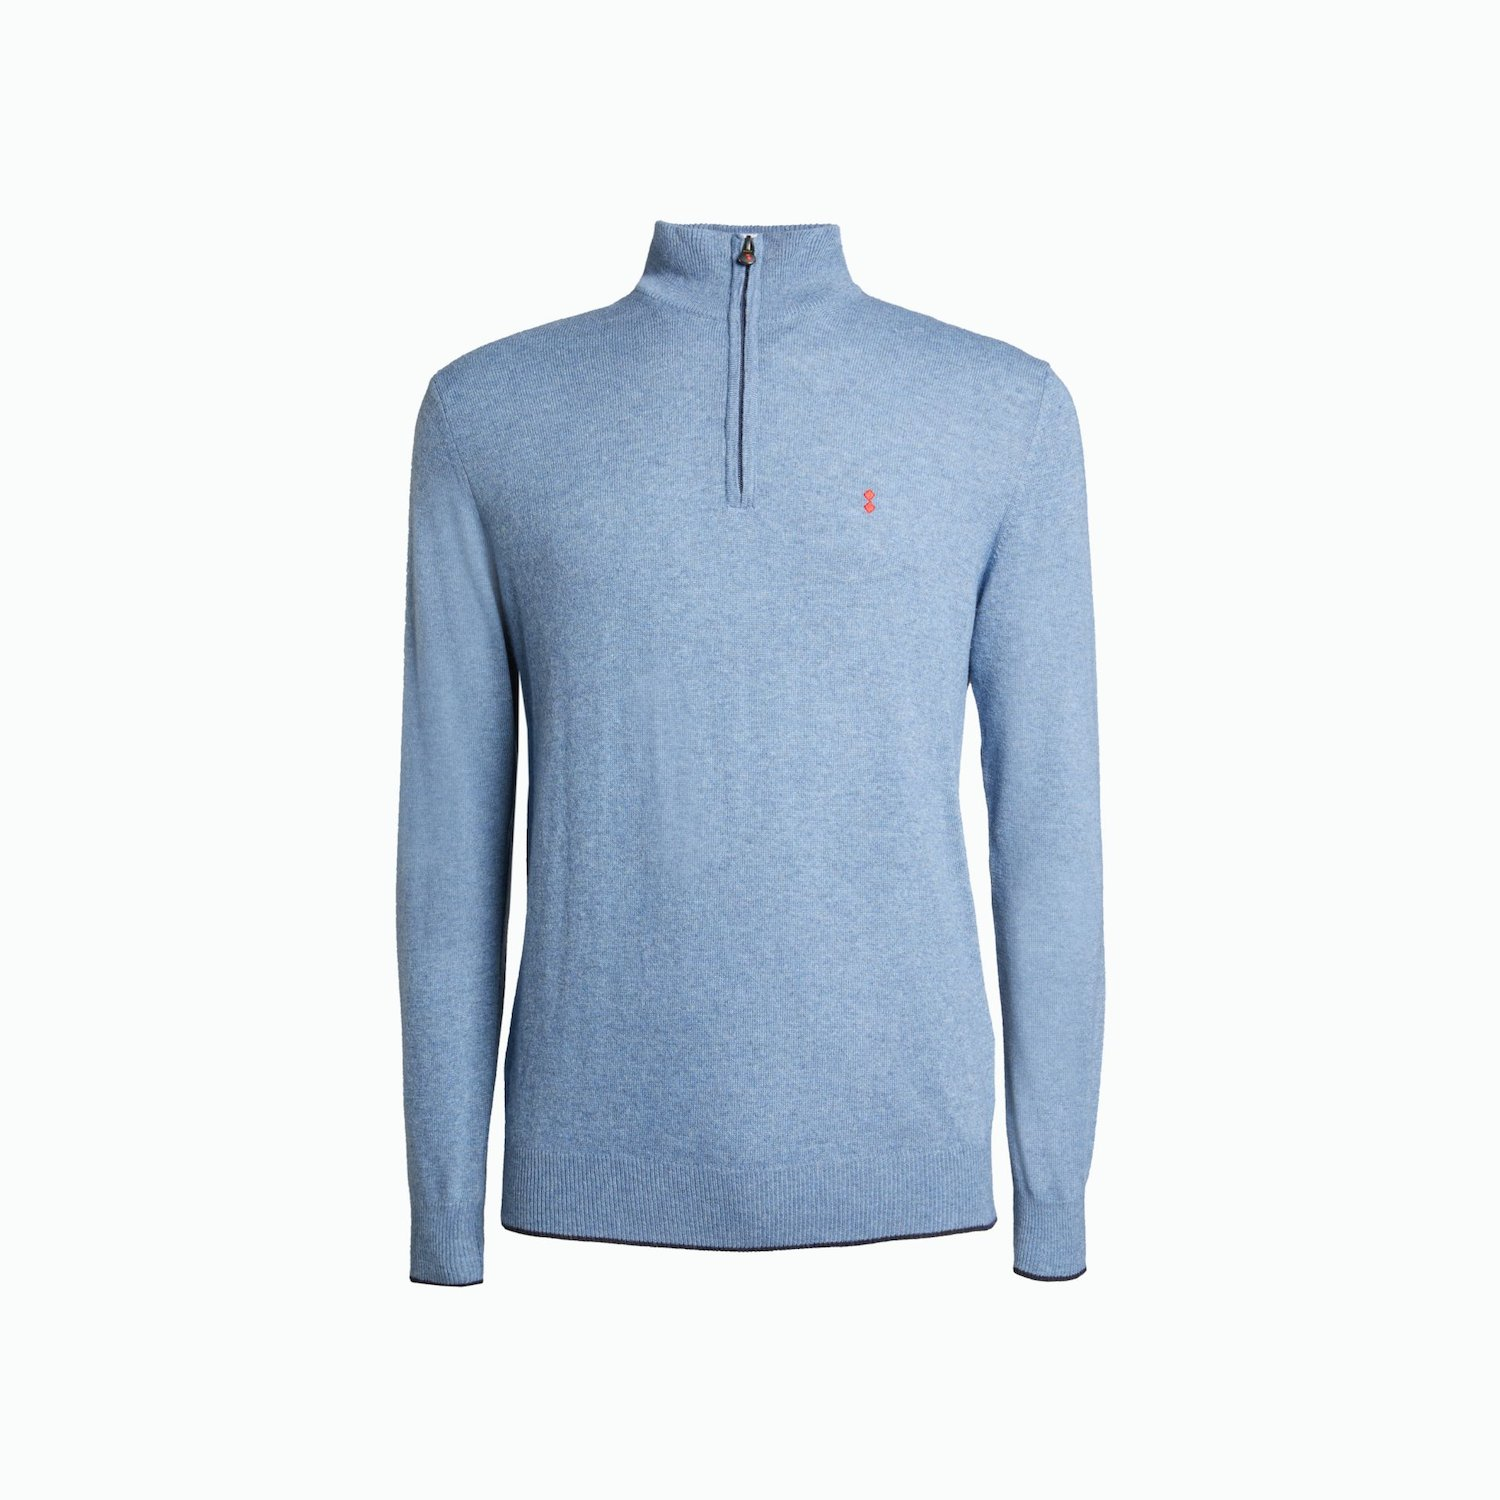 B133 sweater - Light Blue